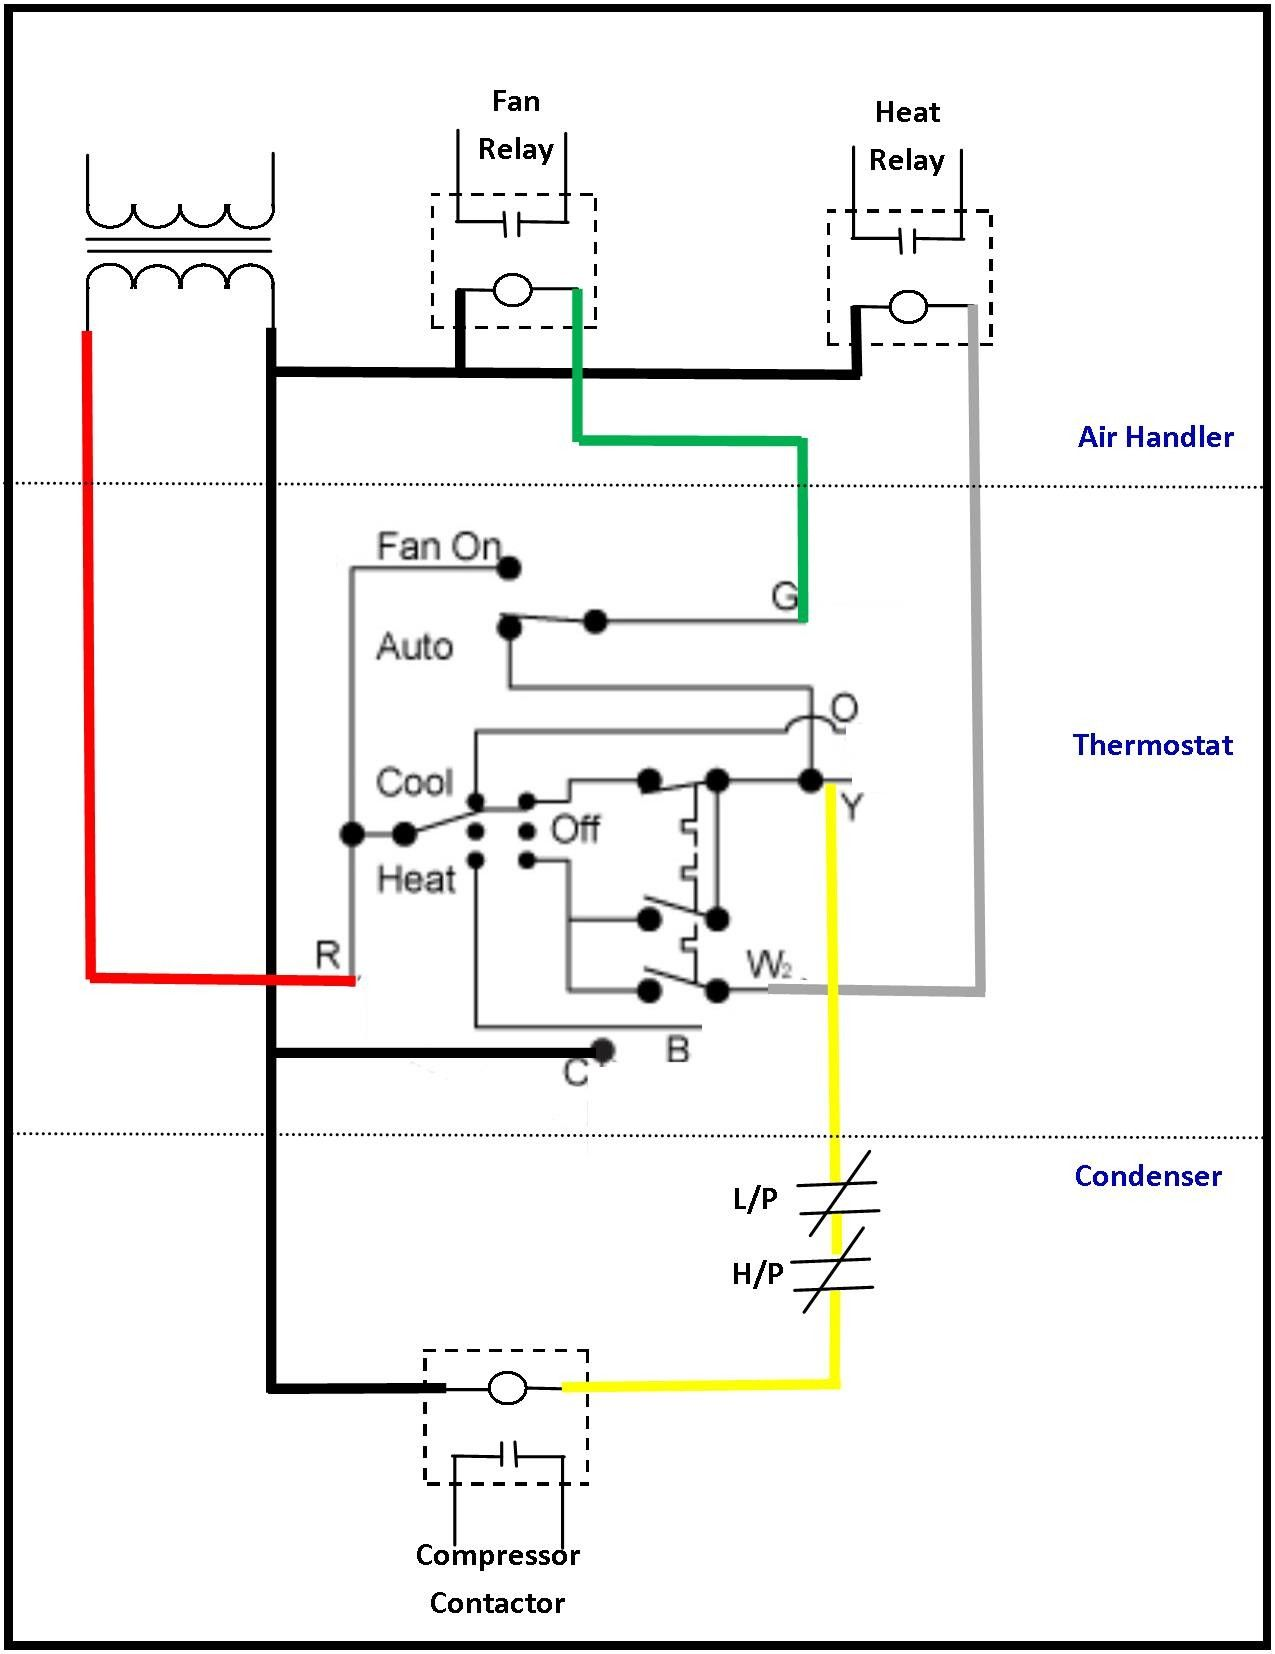 hight resolution of new industrial exhaust fan wiring diagram diagram diagramsamplenew industrial exhaust fan wiring diagram diagram diagramsample diagramtemplate